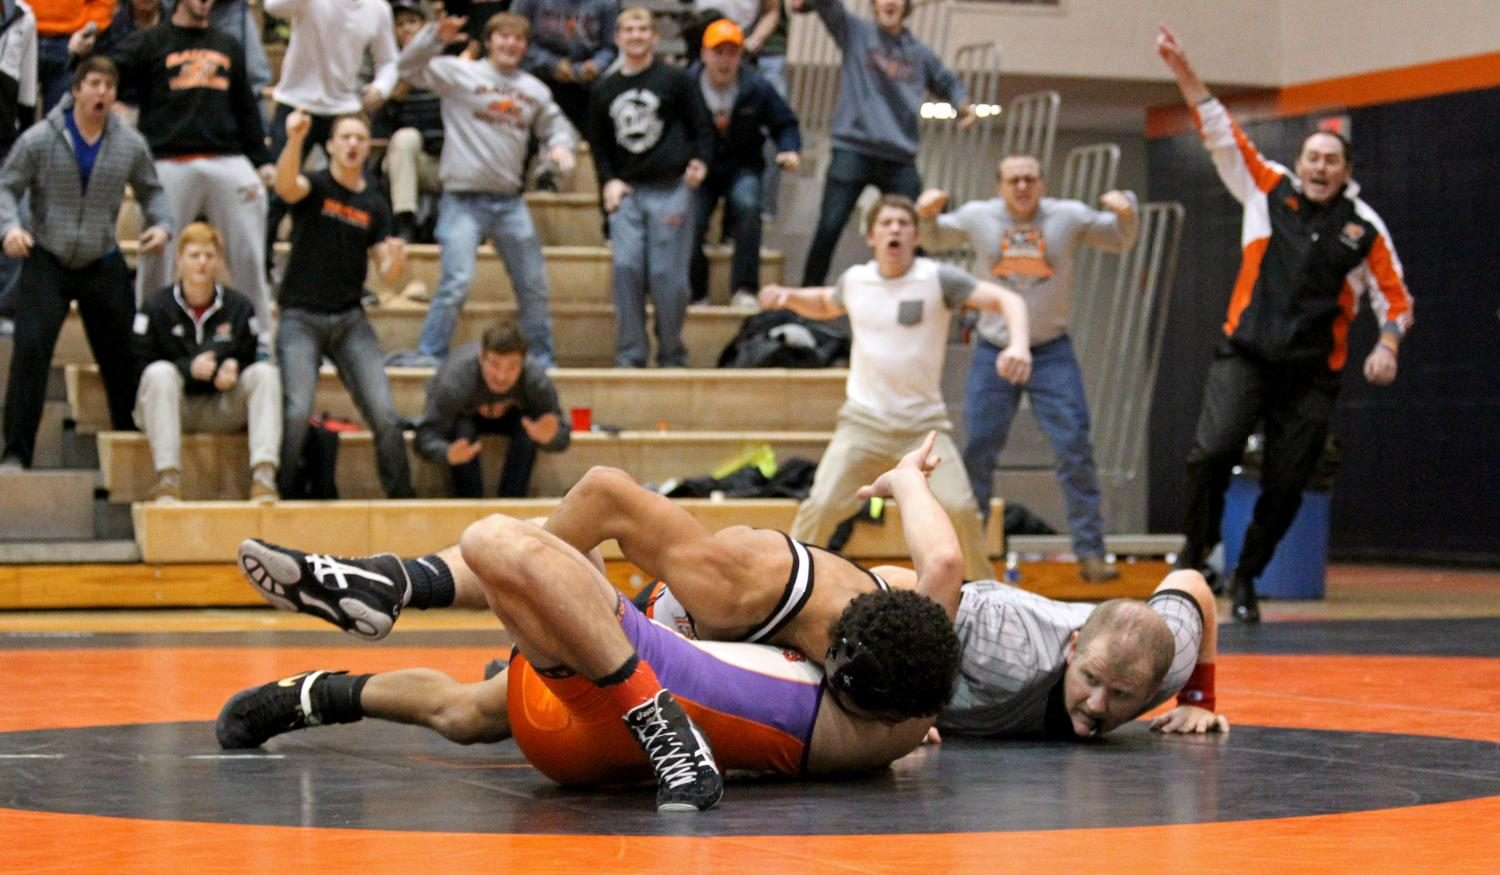 Freshman Juan Rivera attempts to pin Missouri Valley Colleges Todd Brackett while the crowd cheers him to victory on Nov. 15, 2014, in Collins Center. Baker upset No. 4 ranked MVC 28-13 in the HAAC Quad. Photographing wrestling almost always ensures several passionate and emotional photos, and this match did not disappoint.